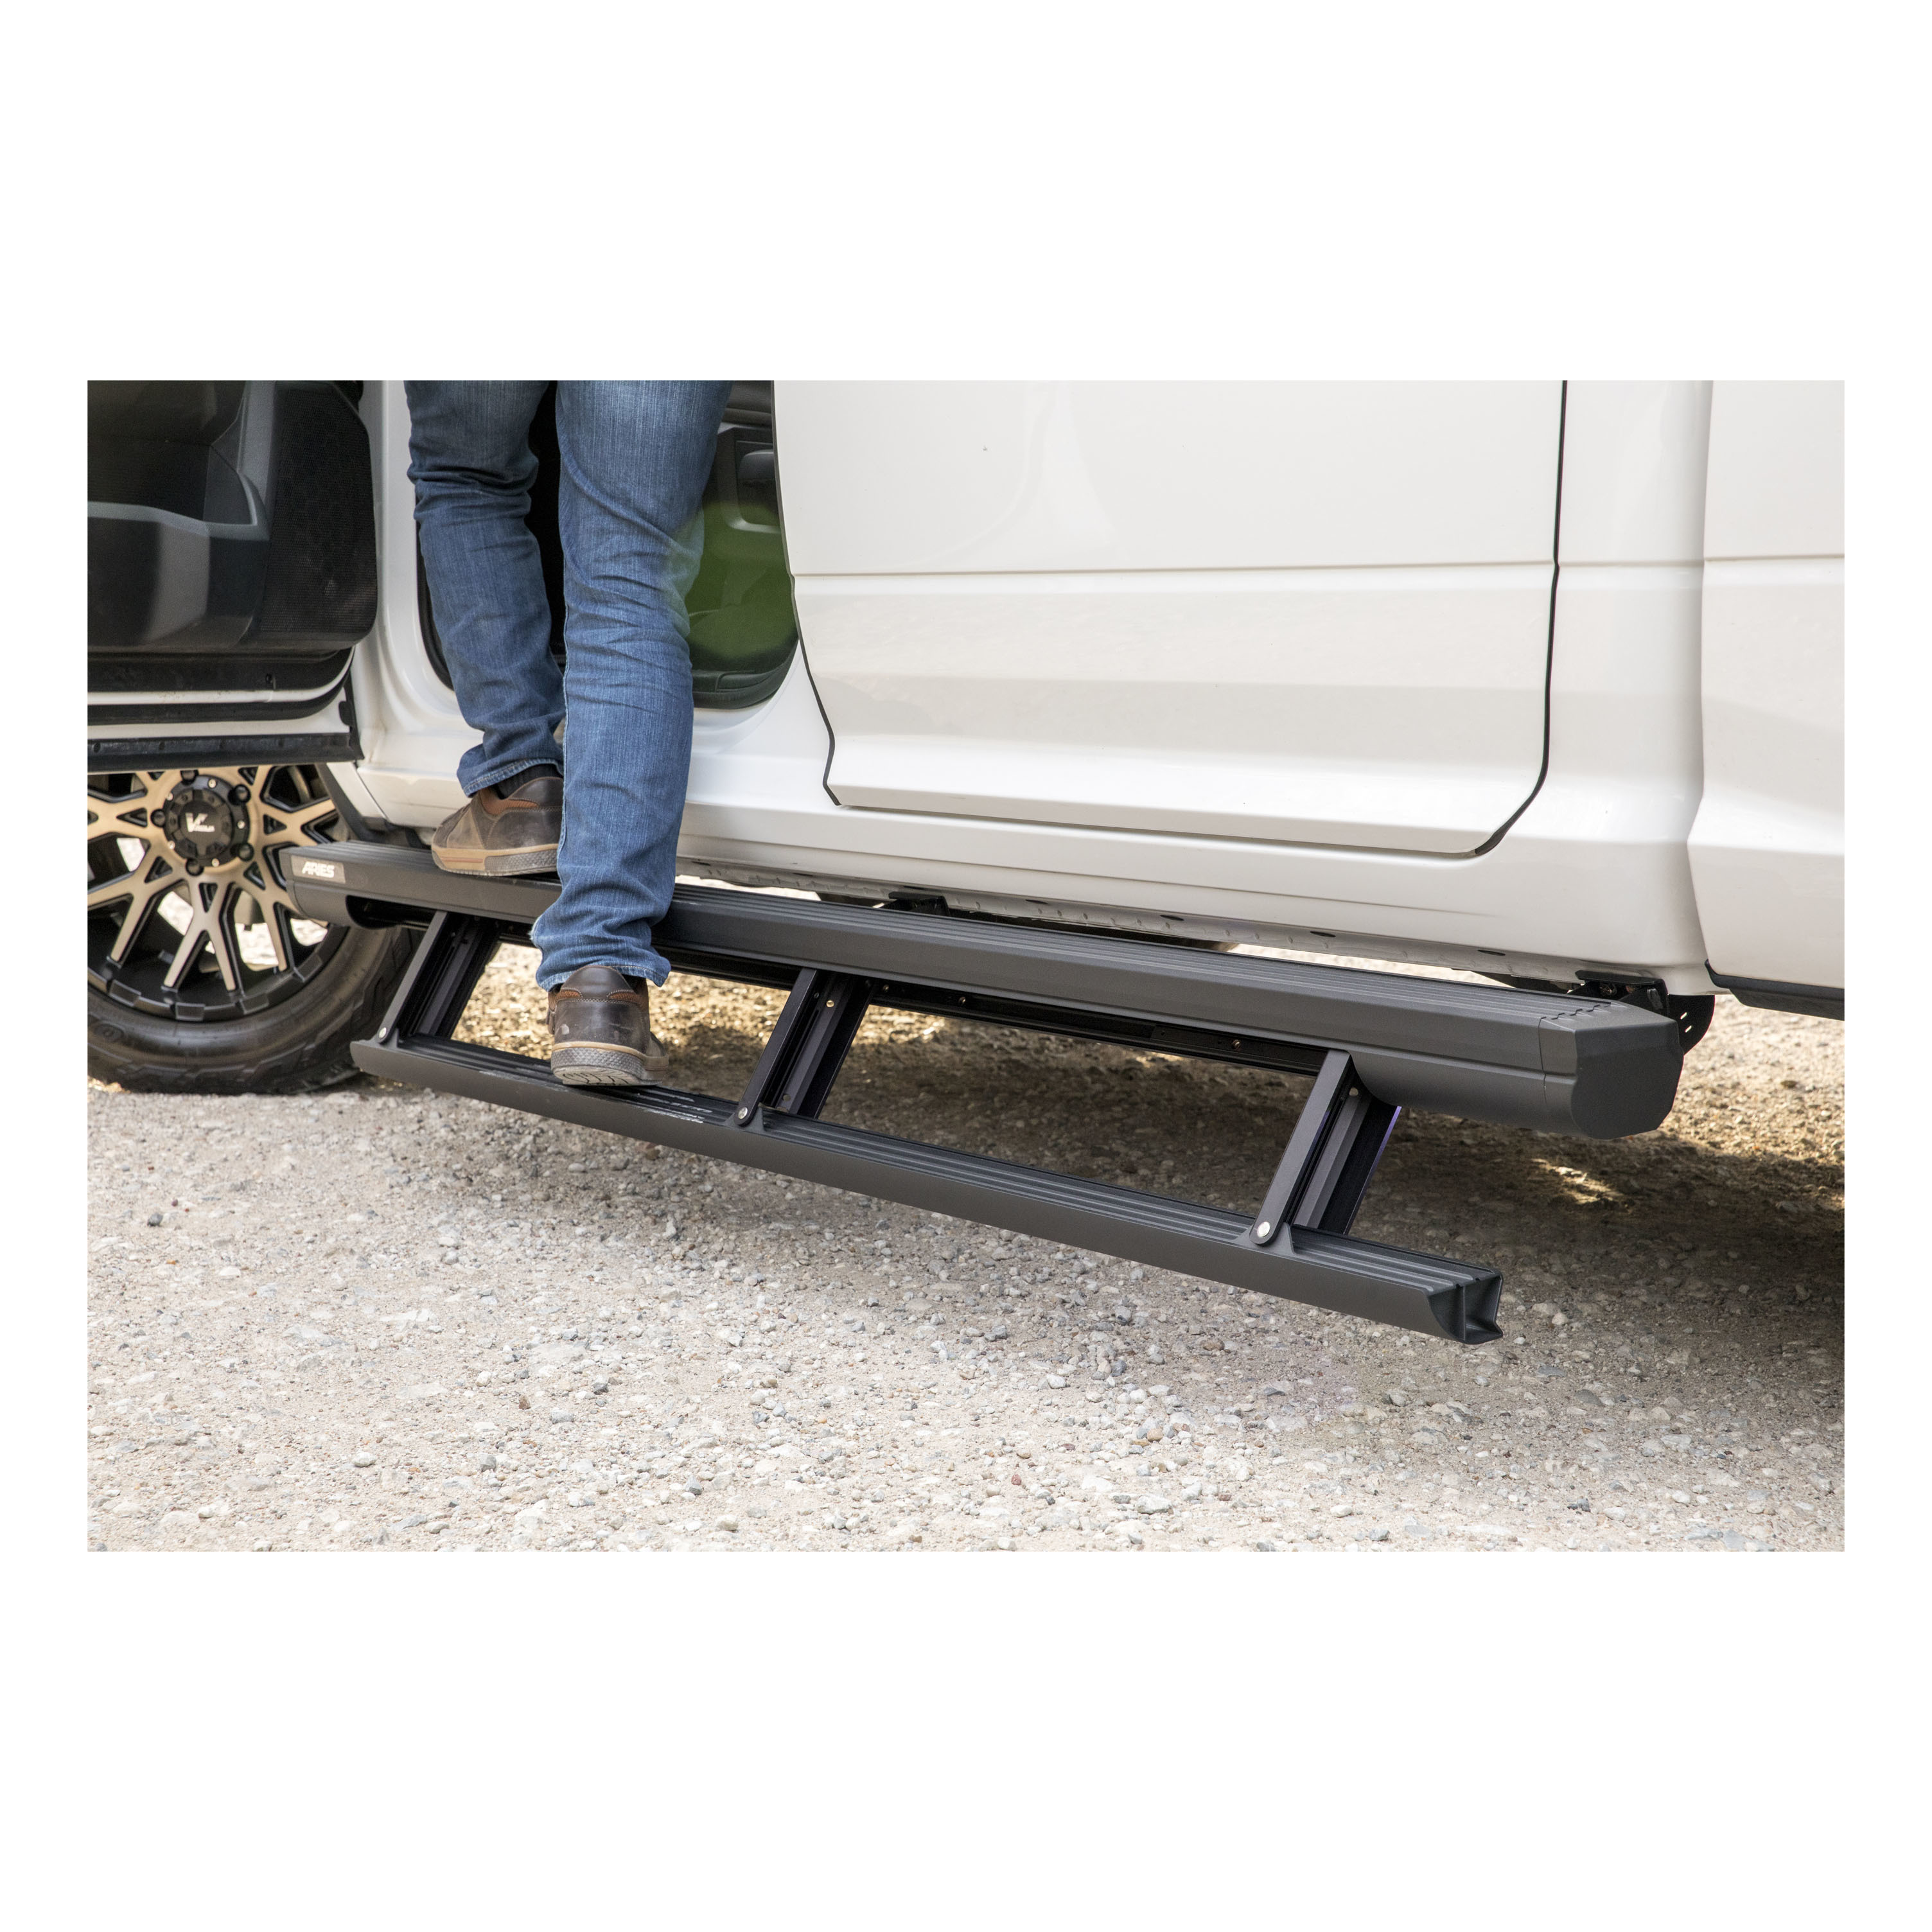 3025179 Aries Running Board Powder Coated